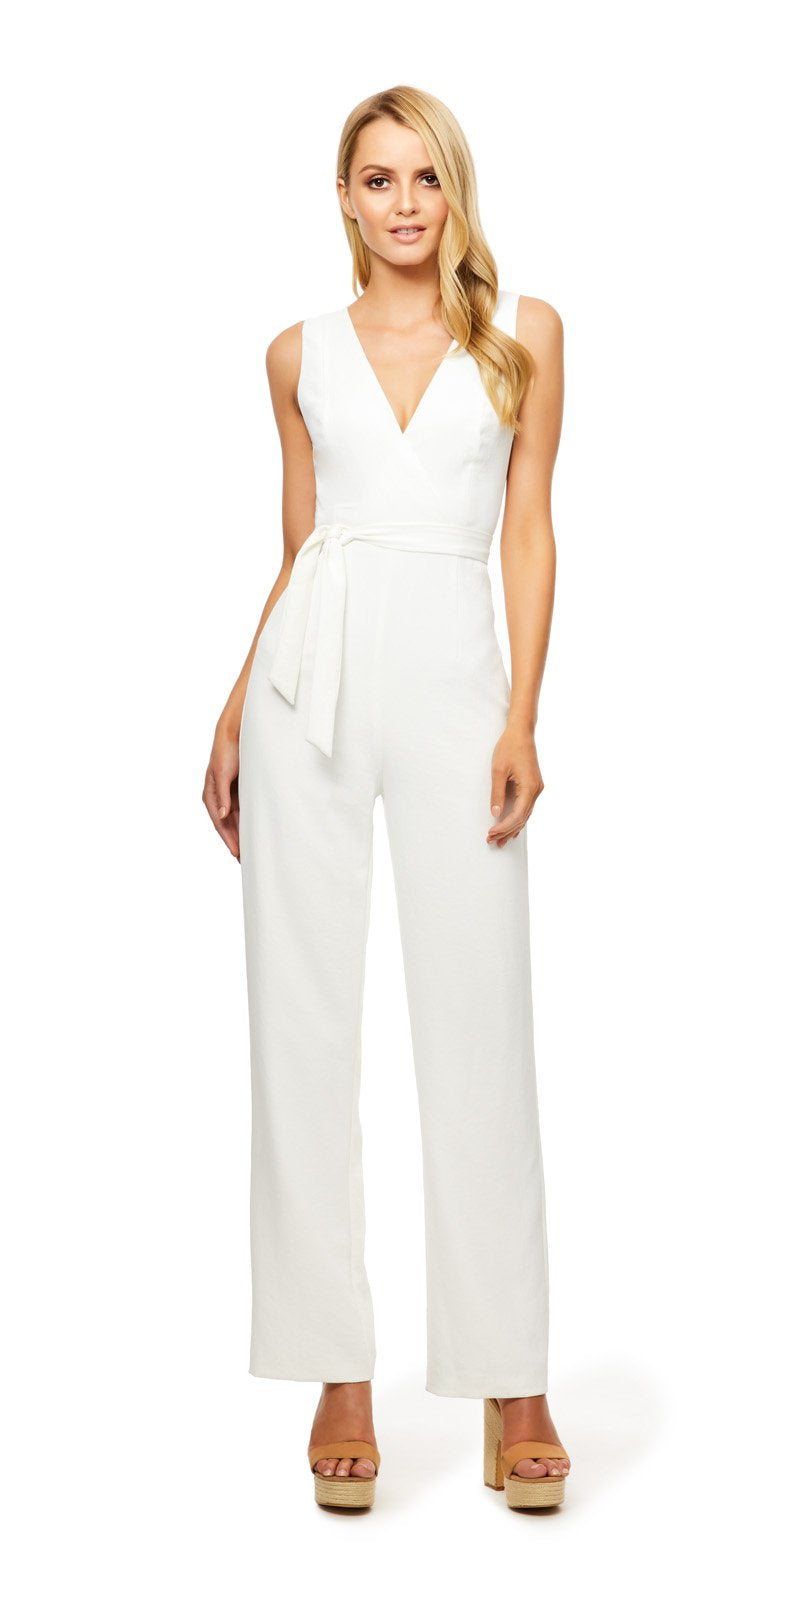 Kookai April White Jumpsuit (For Hire)